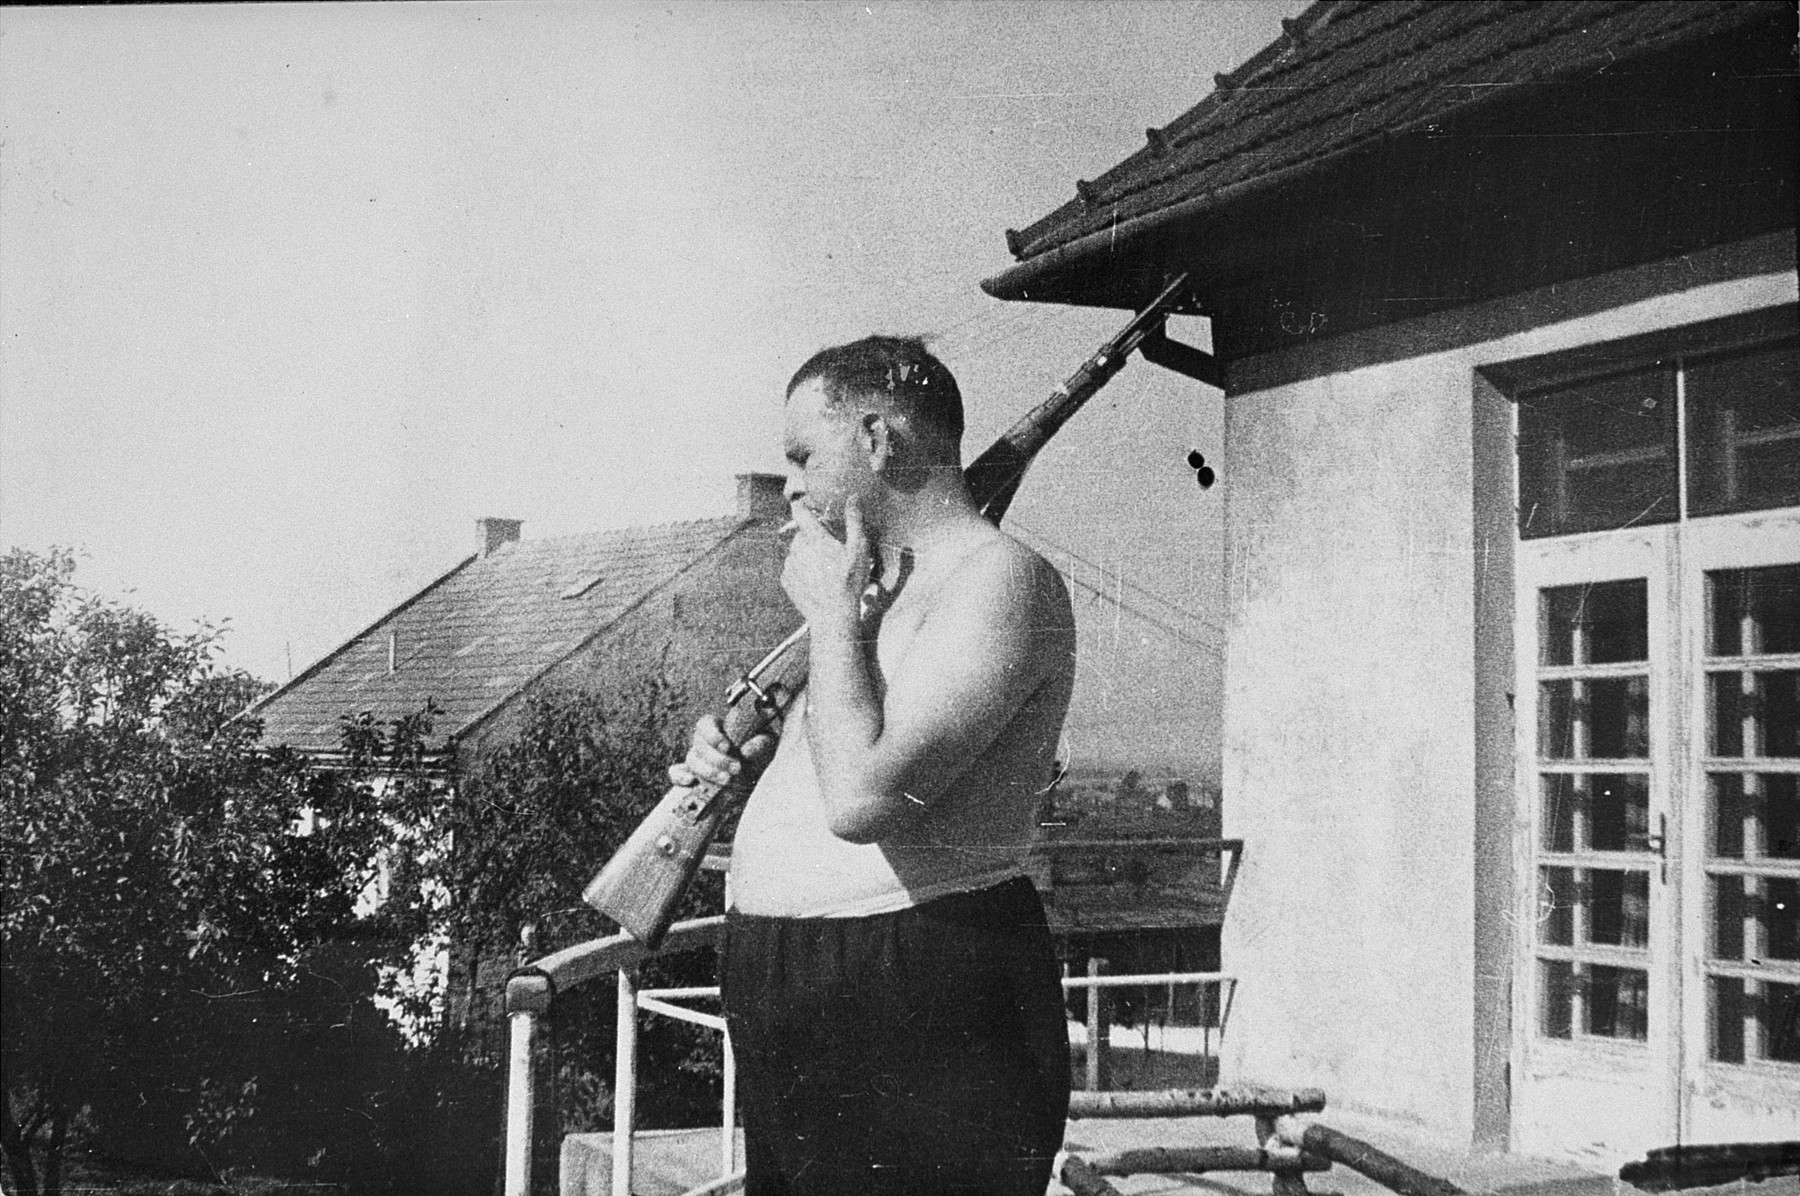 Commandant Amon Goeth stands with his rifle on the balcony of his villa in the Plaszow concentration camp.